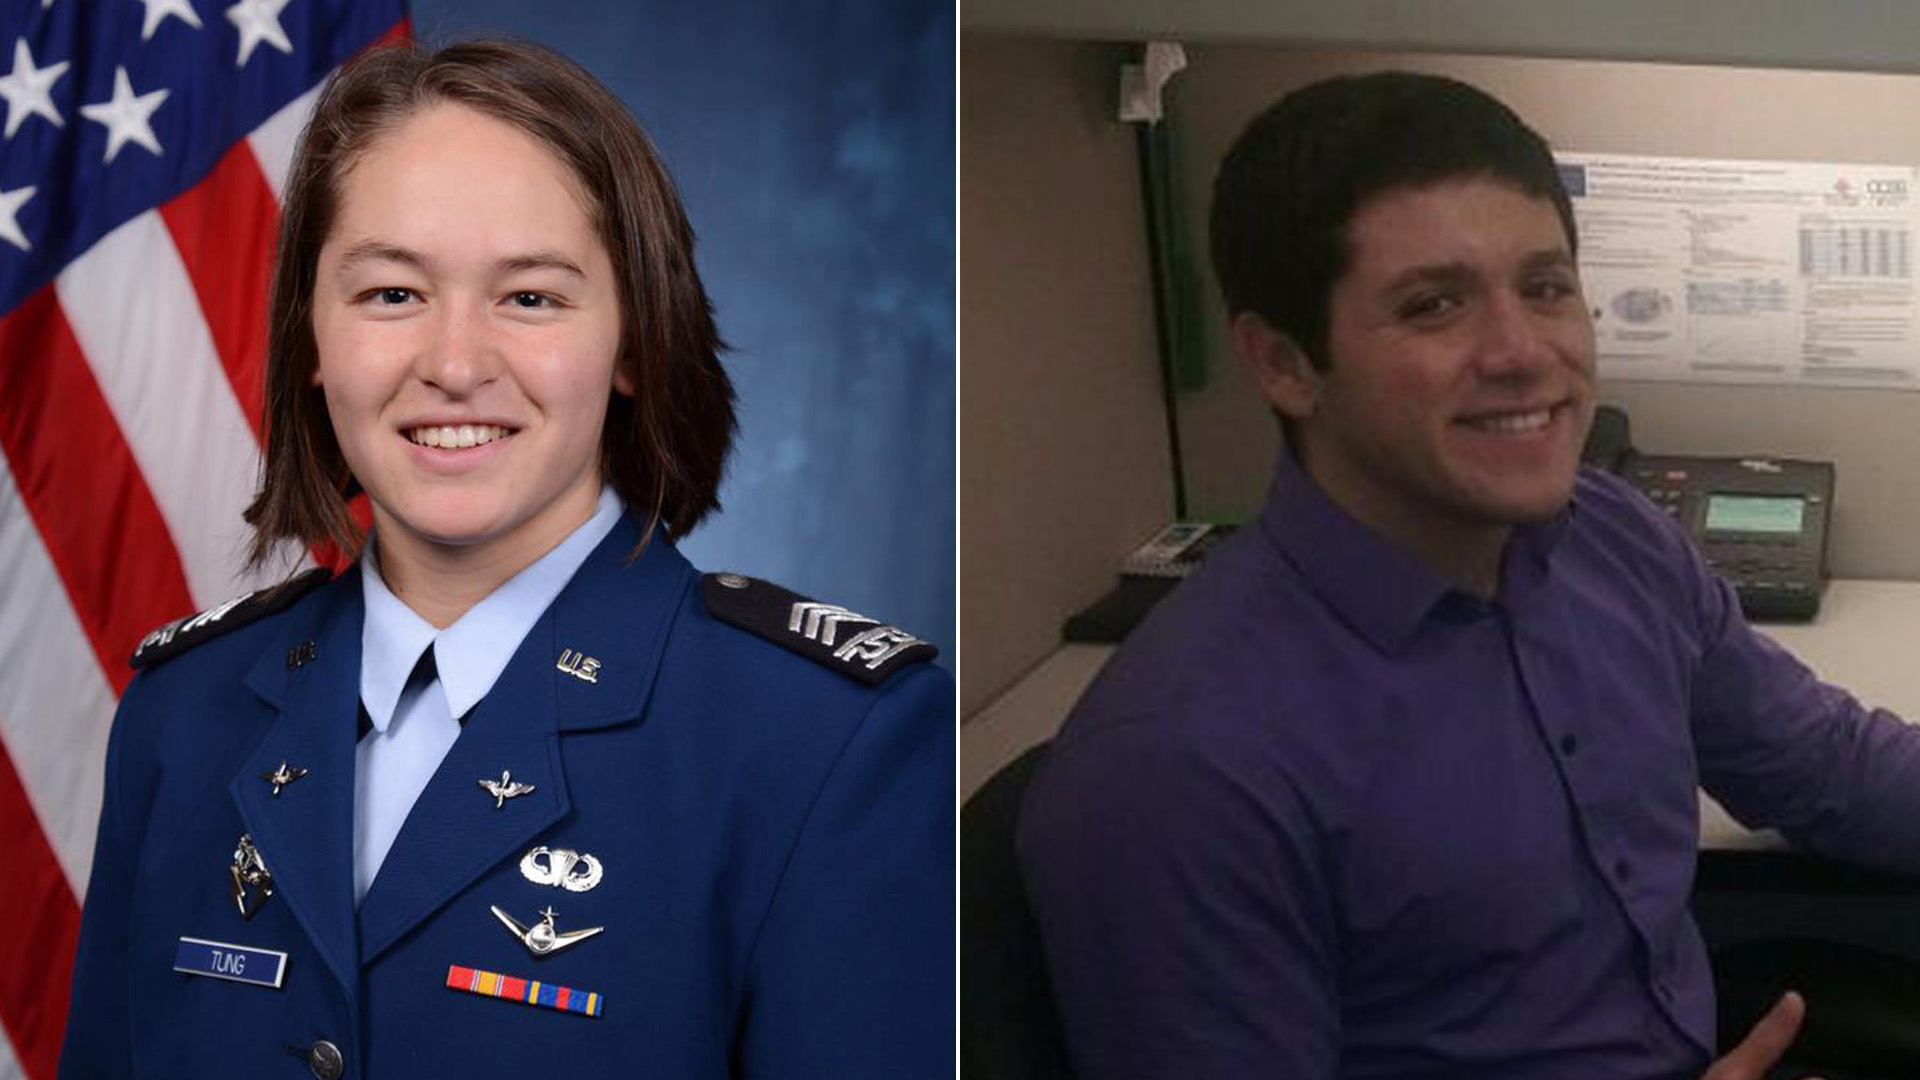 Madison L. Tung, left, is seen an image posted by the U.S. Air Force Academy on its Facebook page in September 2017. Vidal Arroyo, right, is seen in an image posted on the Chapman University blog in July 2017.